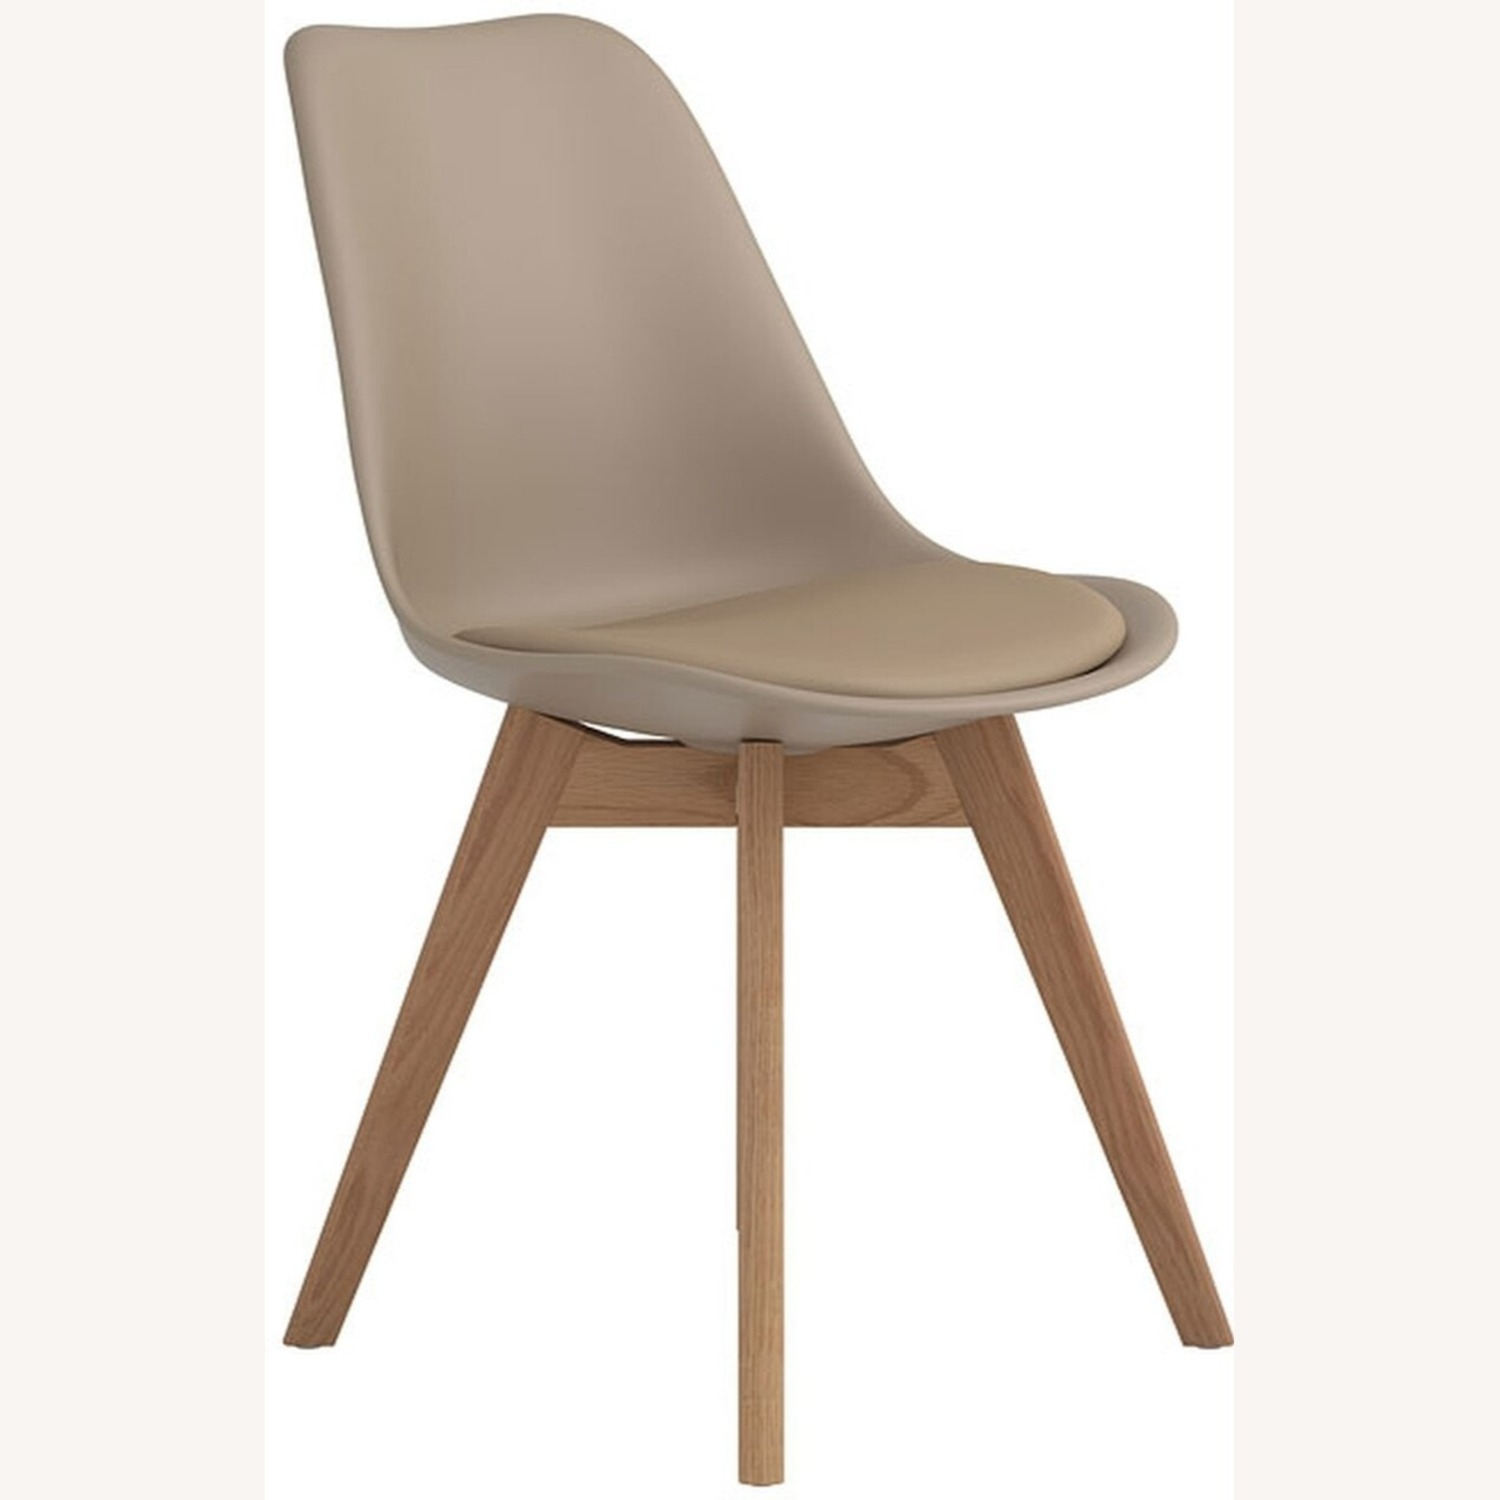 Modern Side Chair In Tan Leatherette - image-0